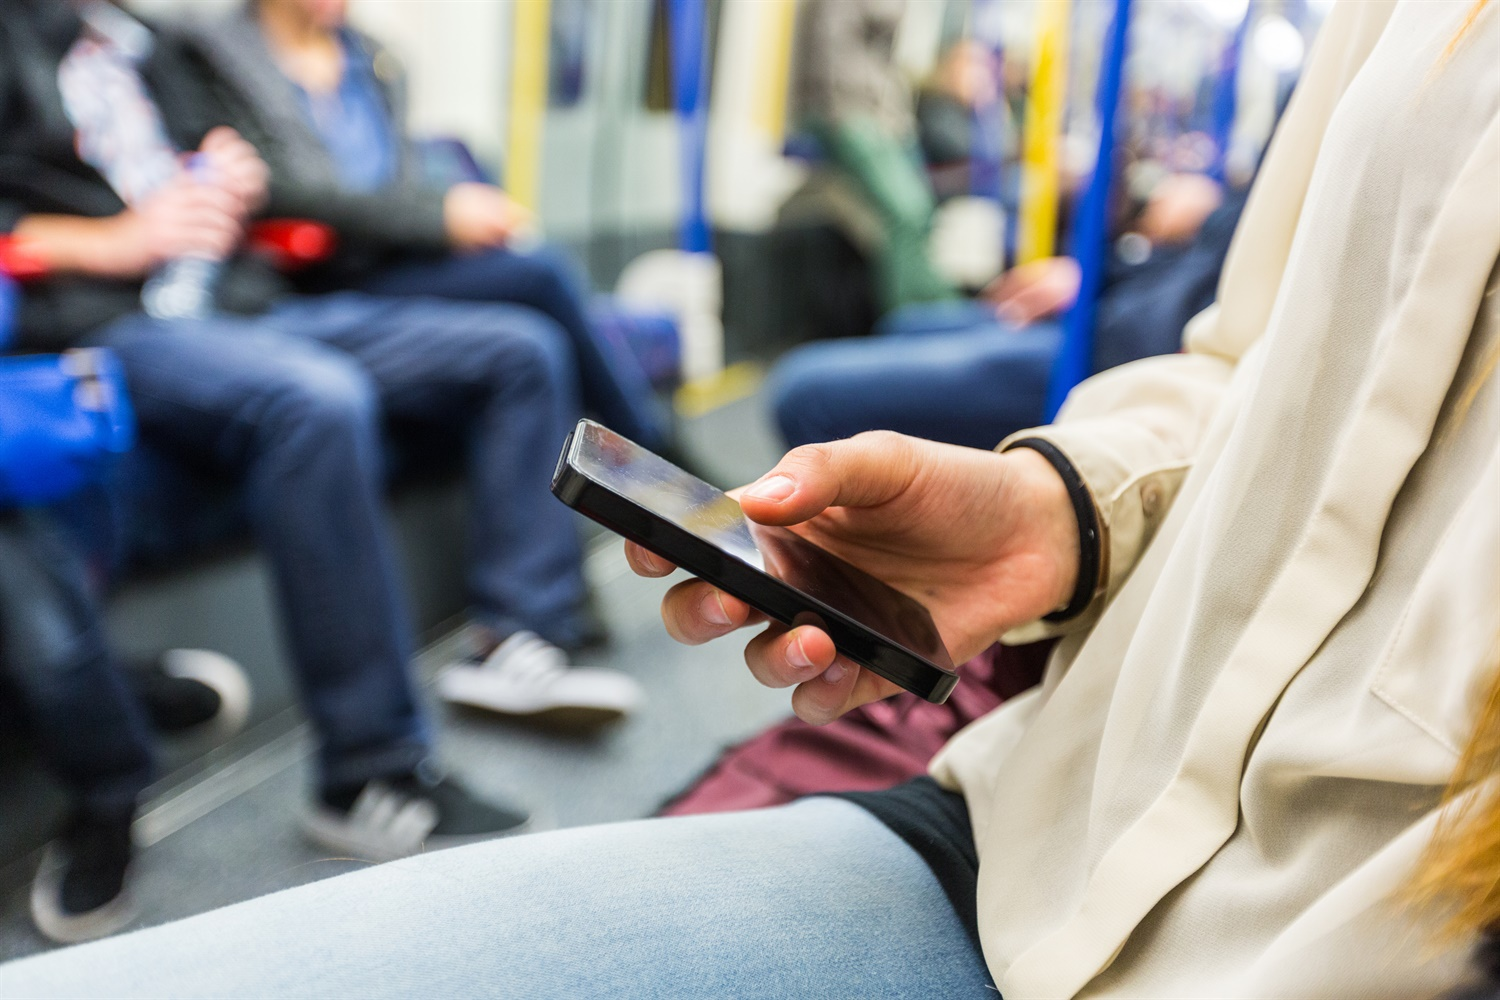 Successful trial means Tube on track for 4G coverage by 2019